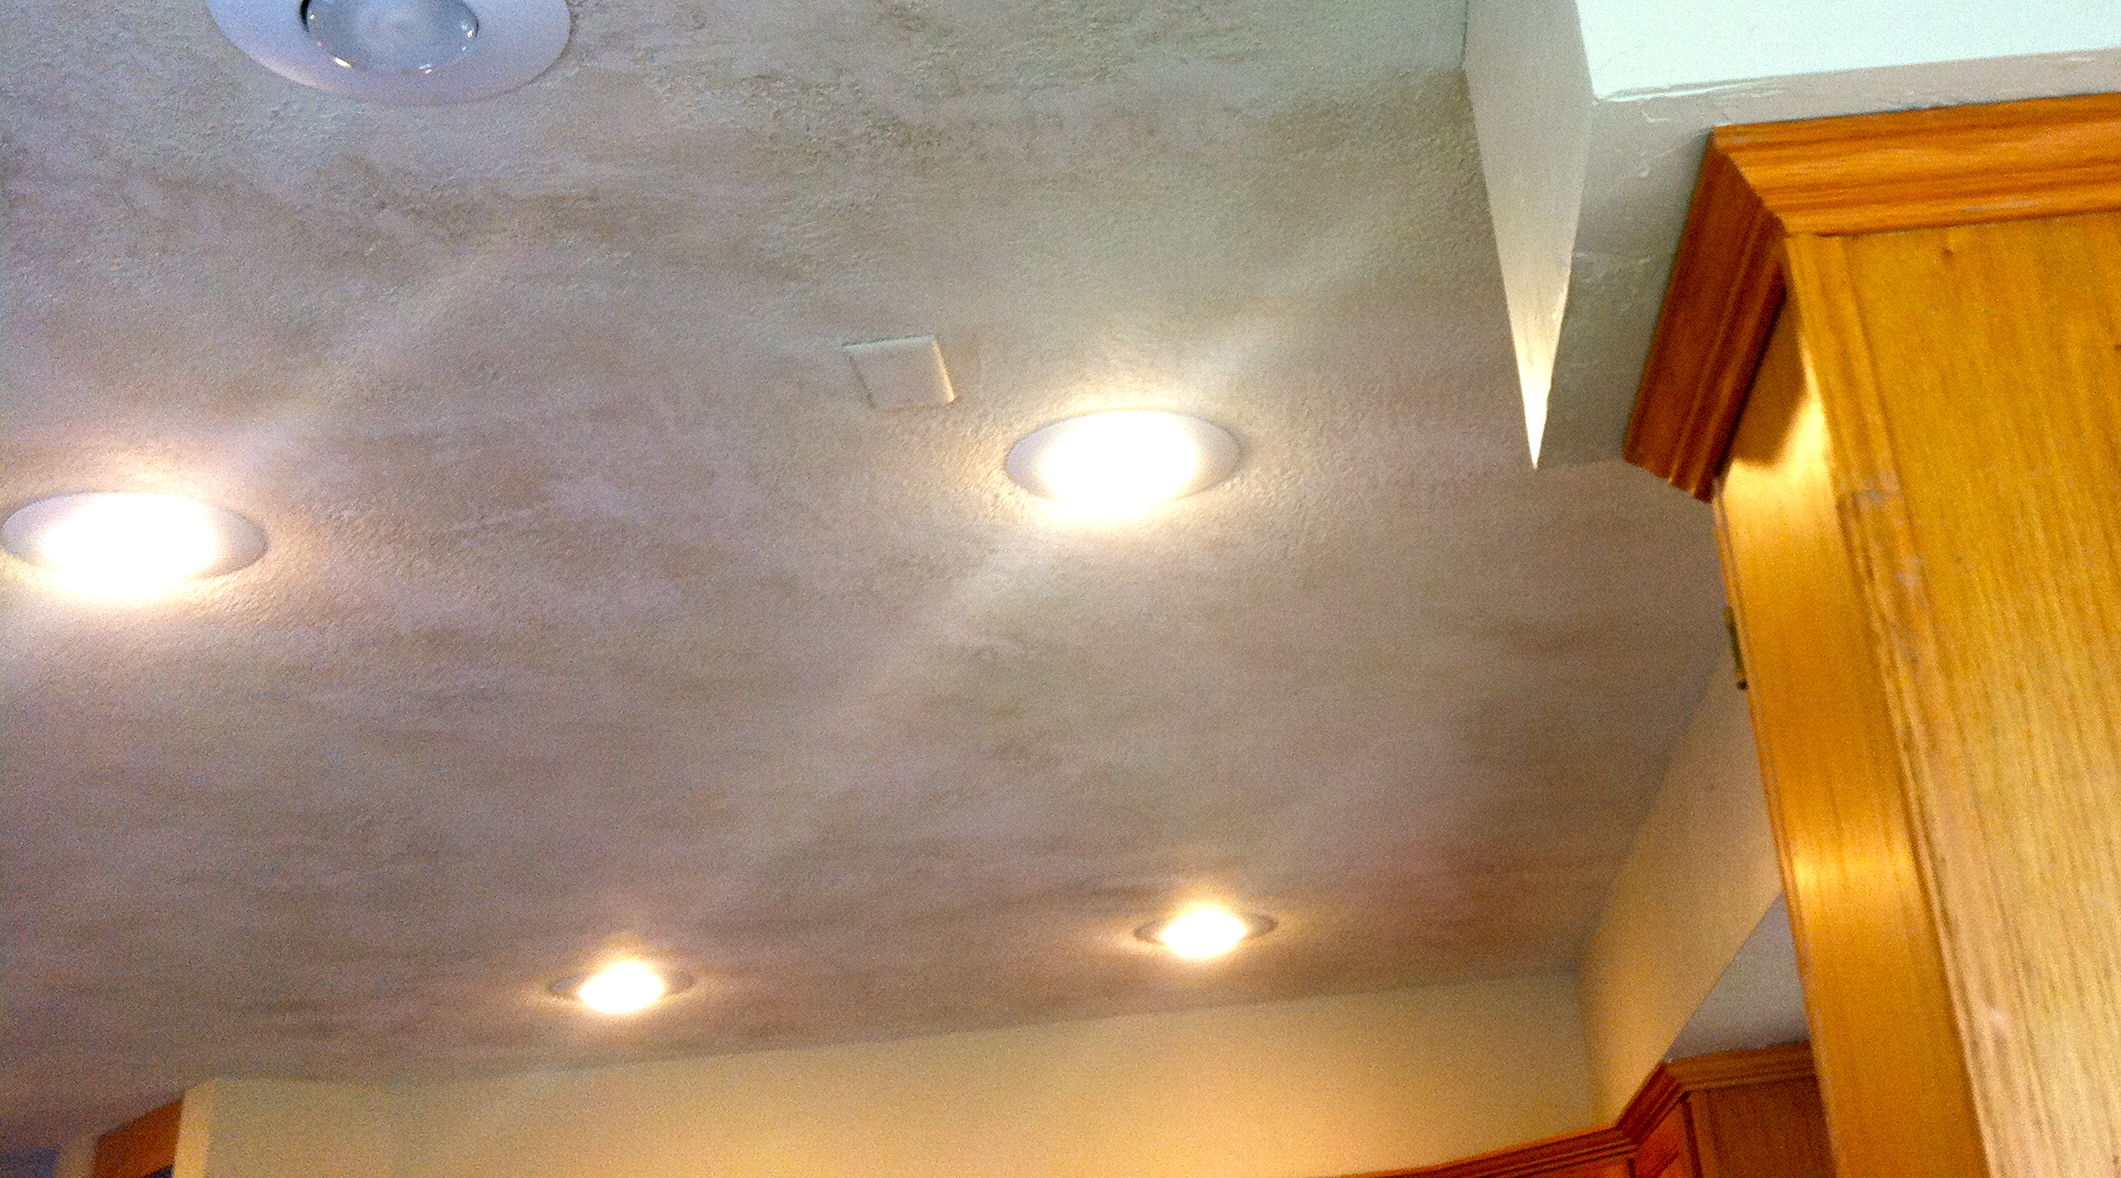 Can Lights u0026 Textured Ceiling & Can Lights u0026 Textured Ceiling - Texturite Wichita azcodes.com